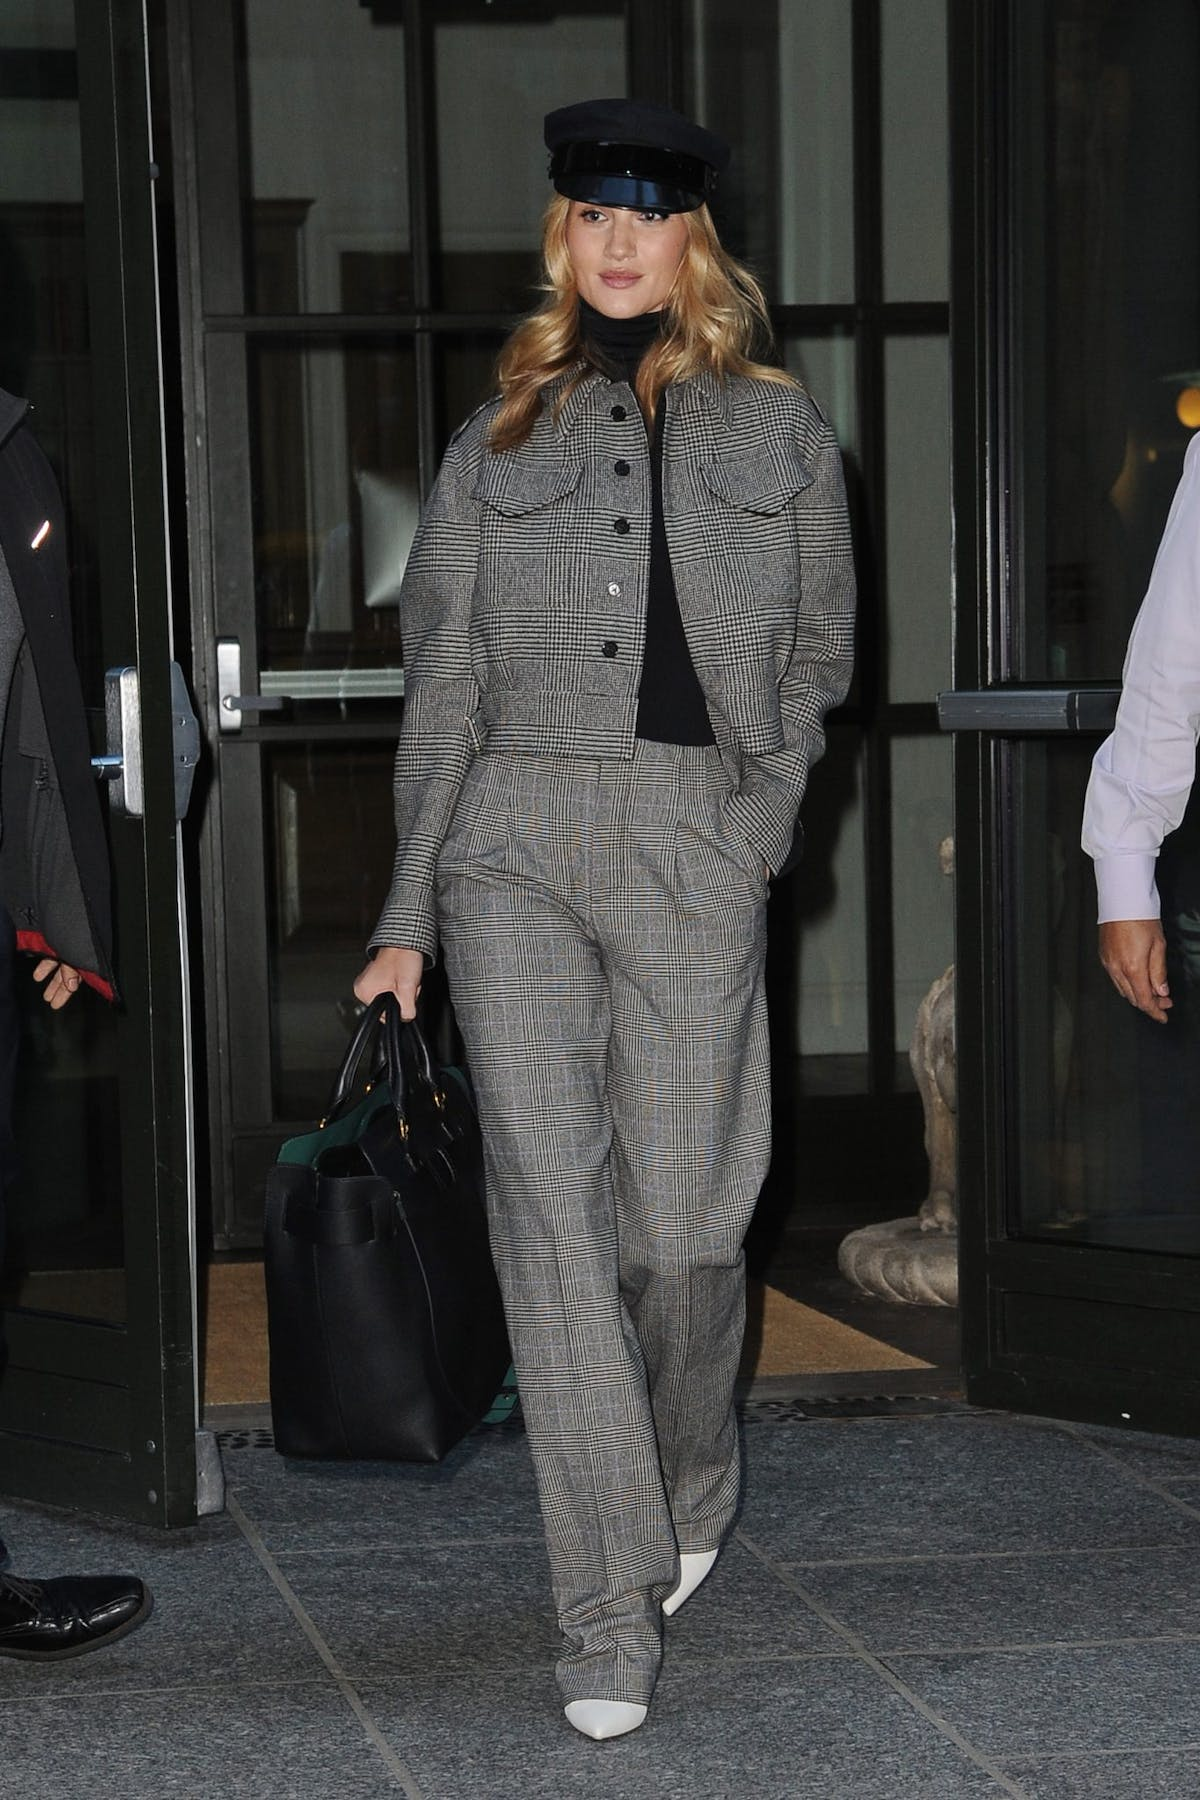 6b854c29e20 Get daily outfit inspiration with our round-up of the best A-list ...